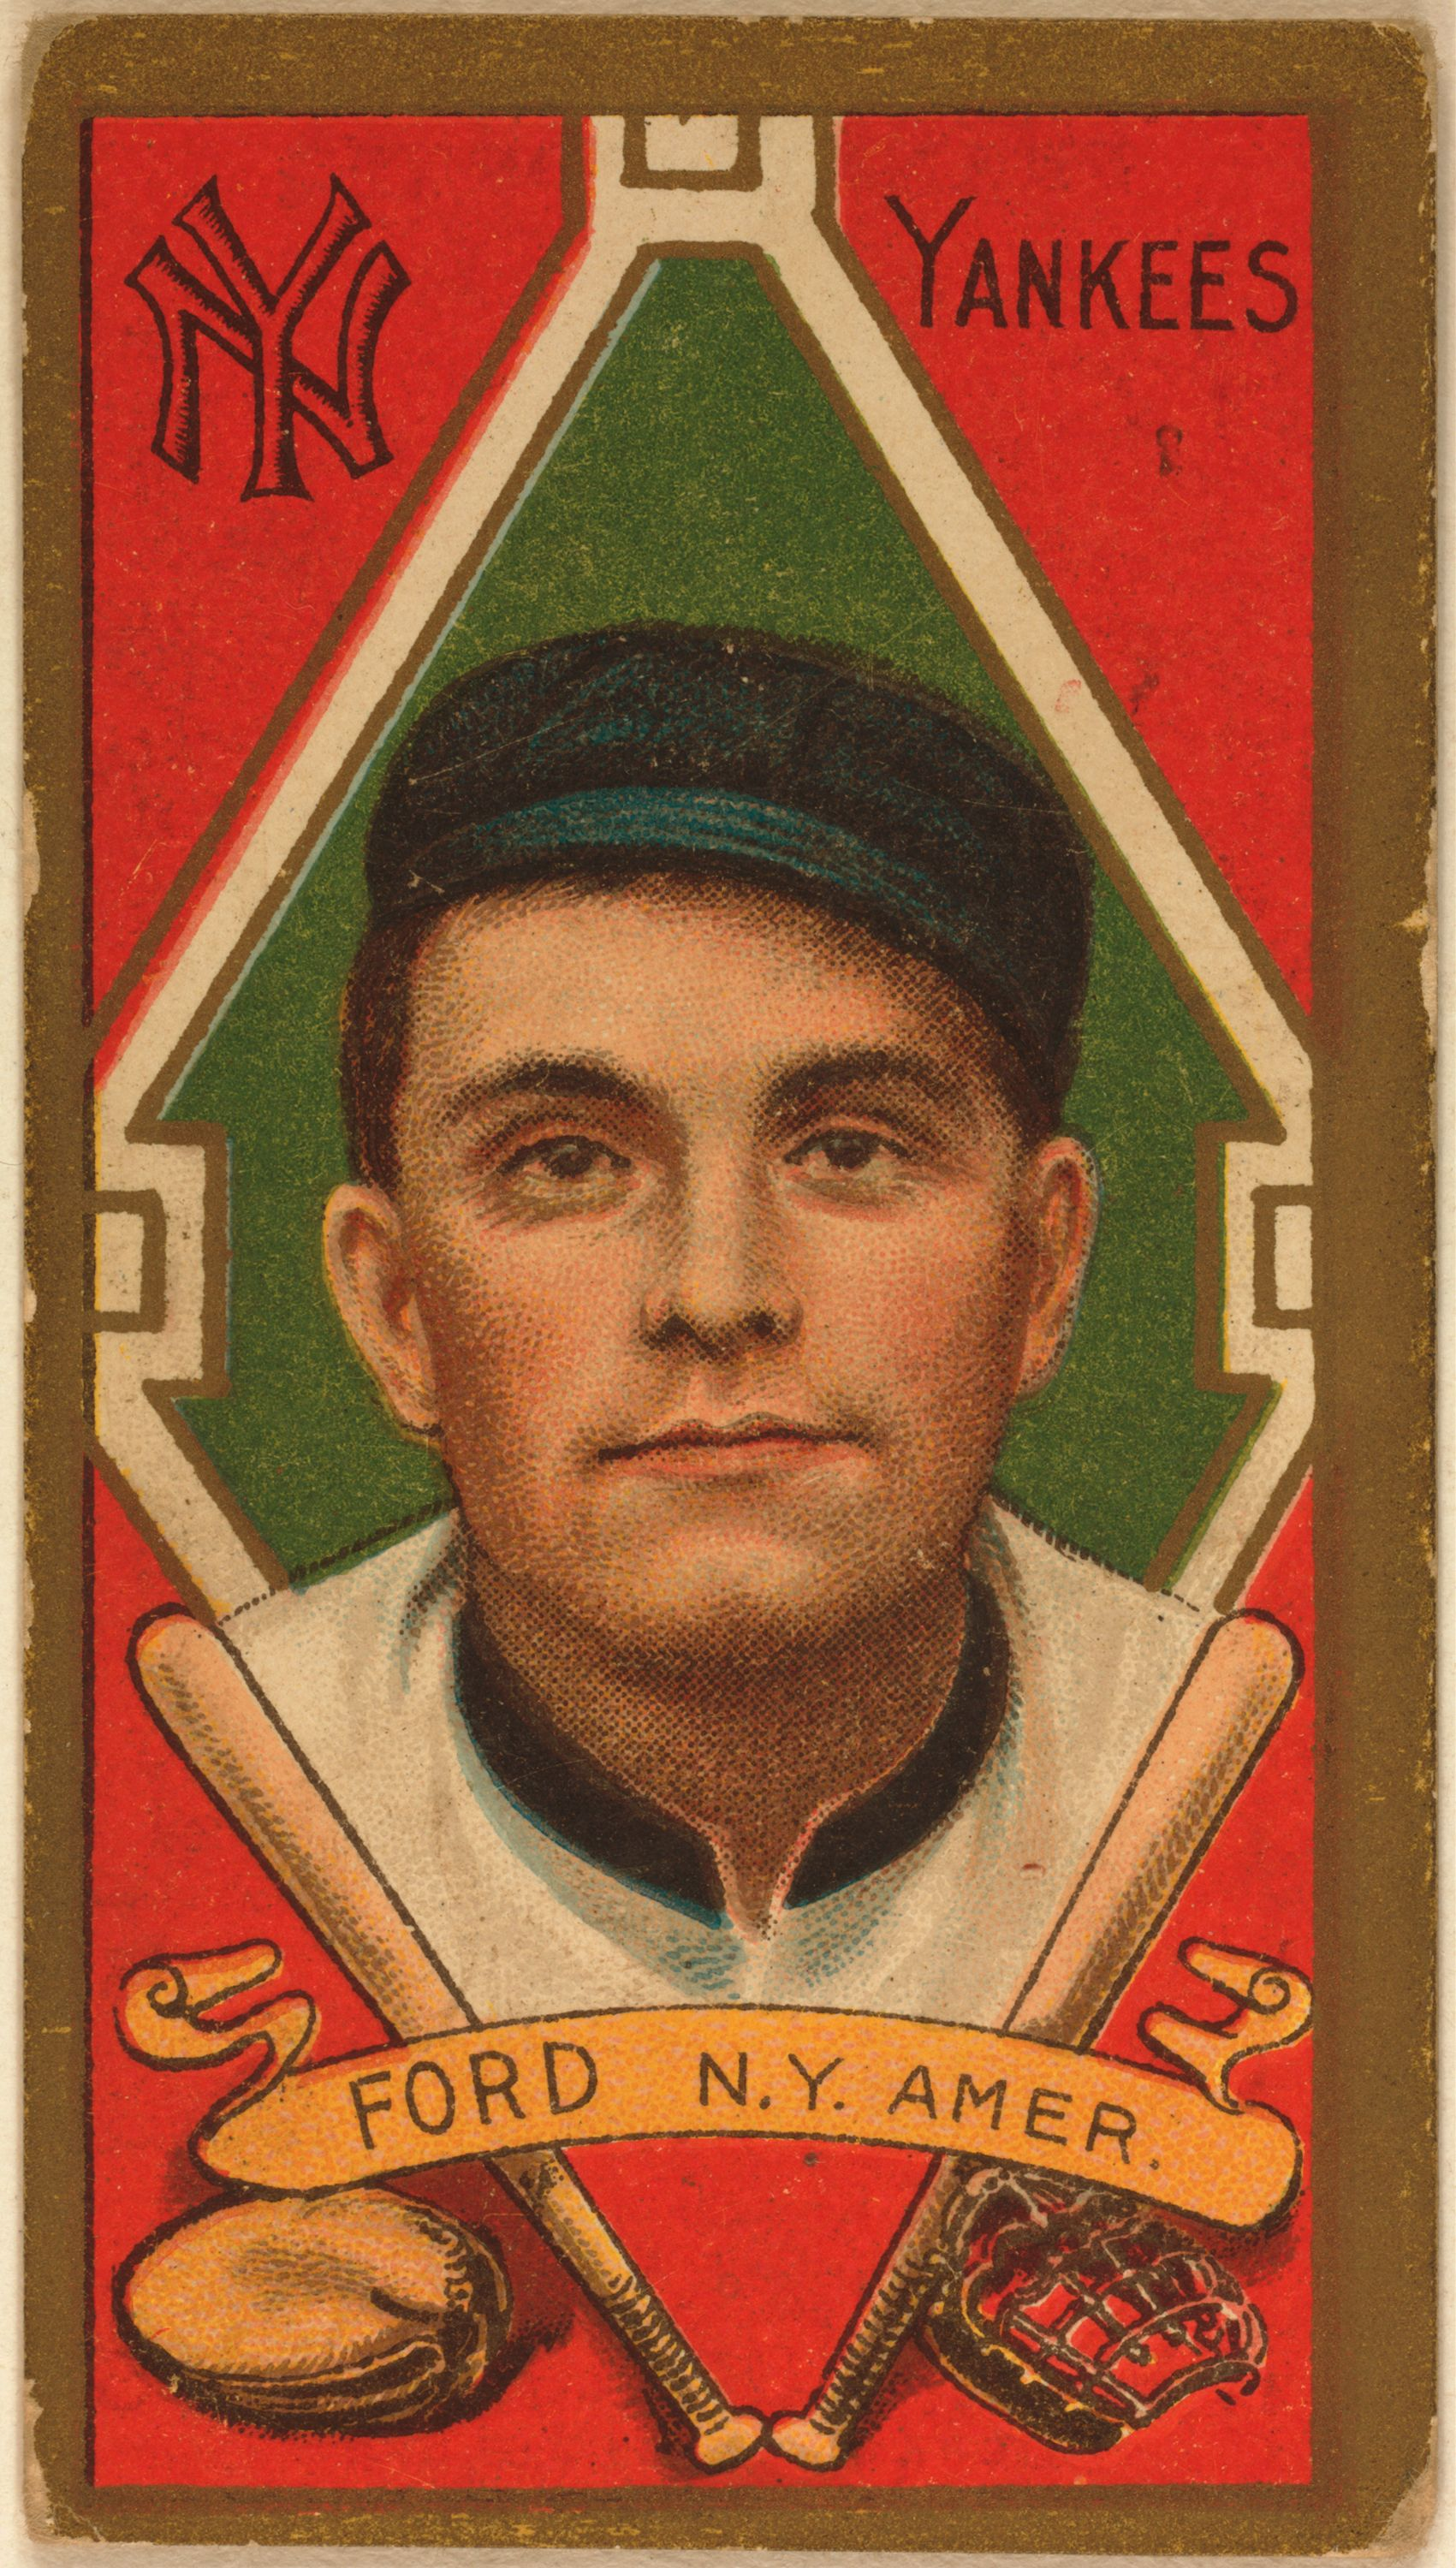 the history of baseball cards History of baseball cards nobody is one hundred percent sure which was the very first baseball card produced, however the hobby of collecting baseball cards dates from the second half of the 19th century, well over one hundred years ago goodwin & co, maker of old judge and gypsy queen cigarette brands is believed by many to be the first company to produce baseball cards.